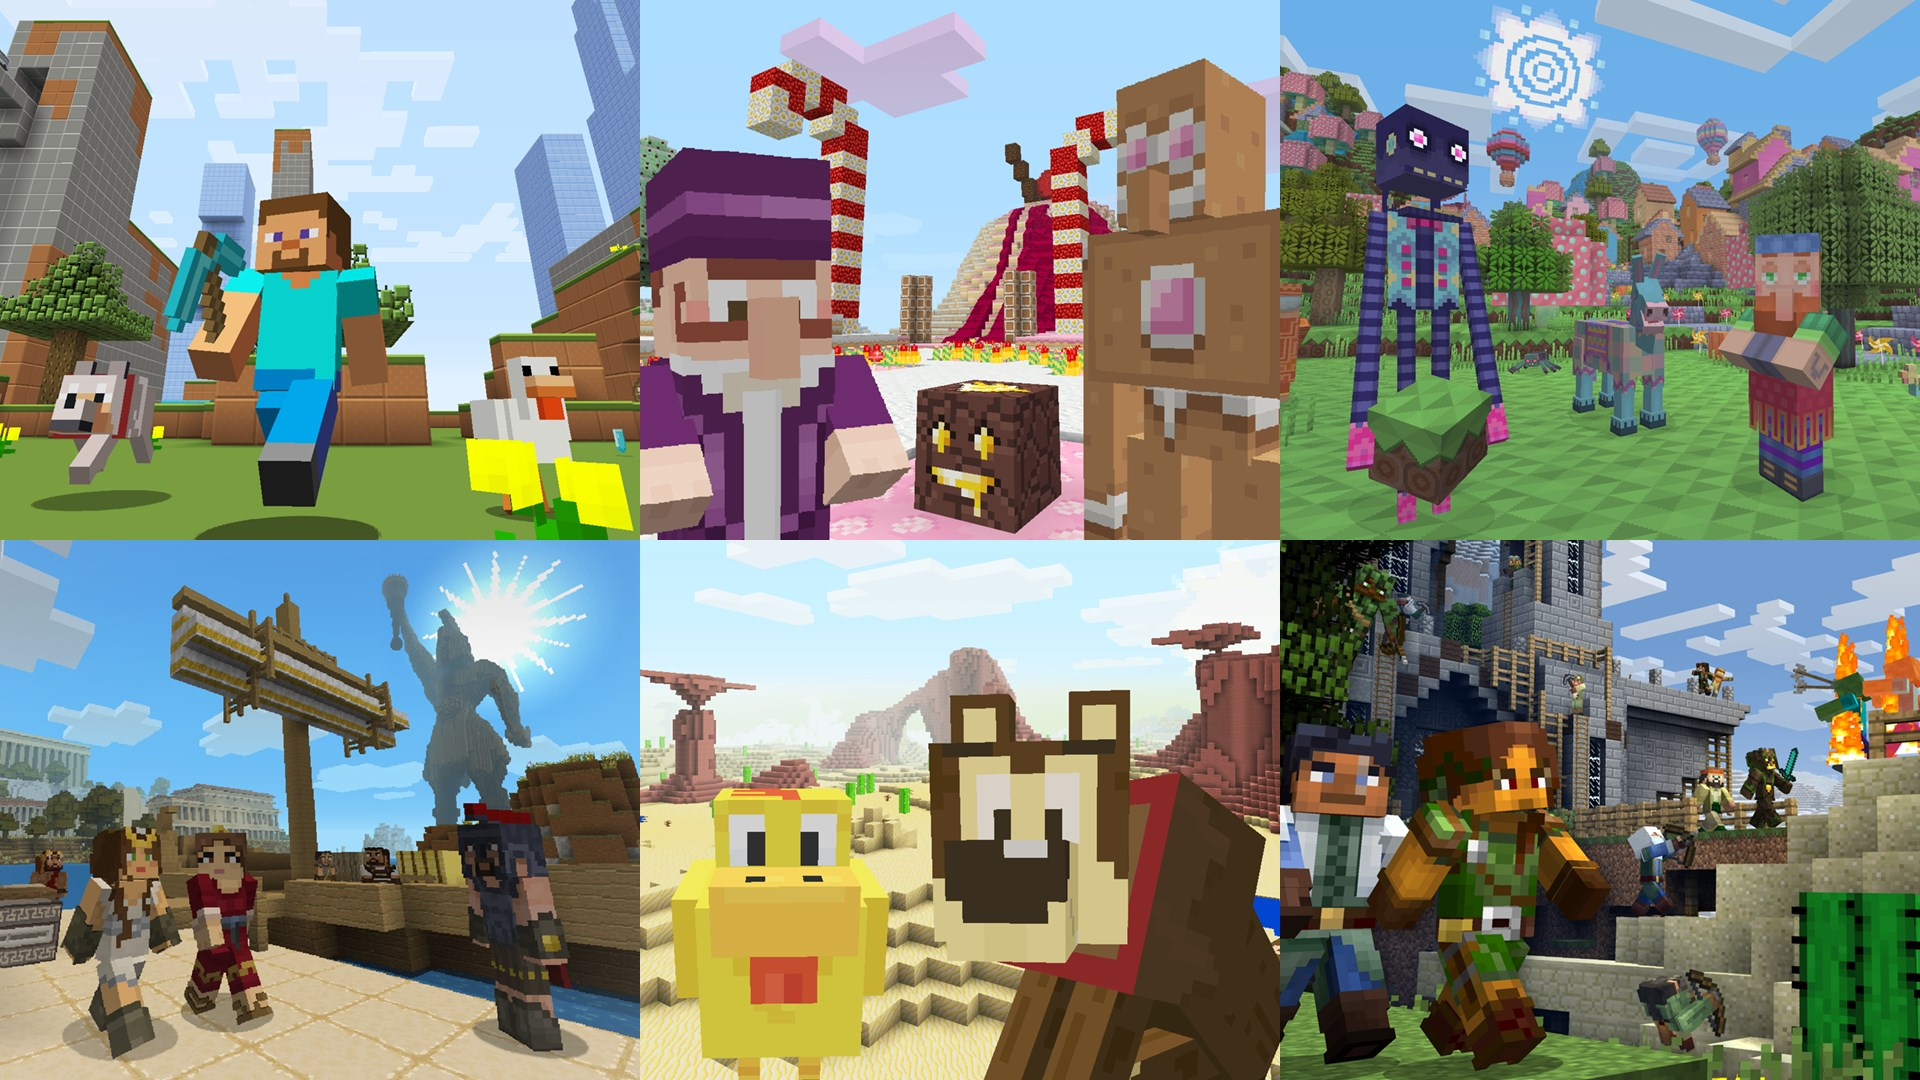 Buy Minecraft Builder's Pack - Microsoft Store